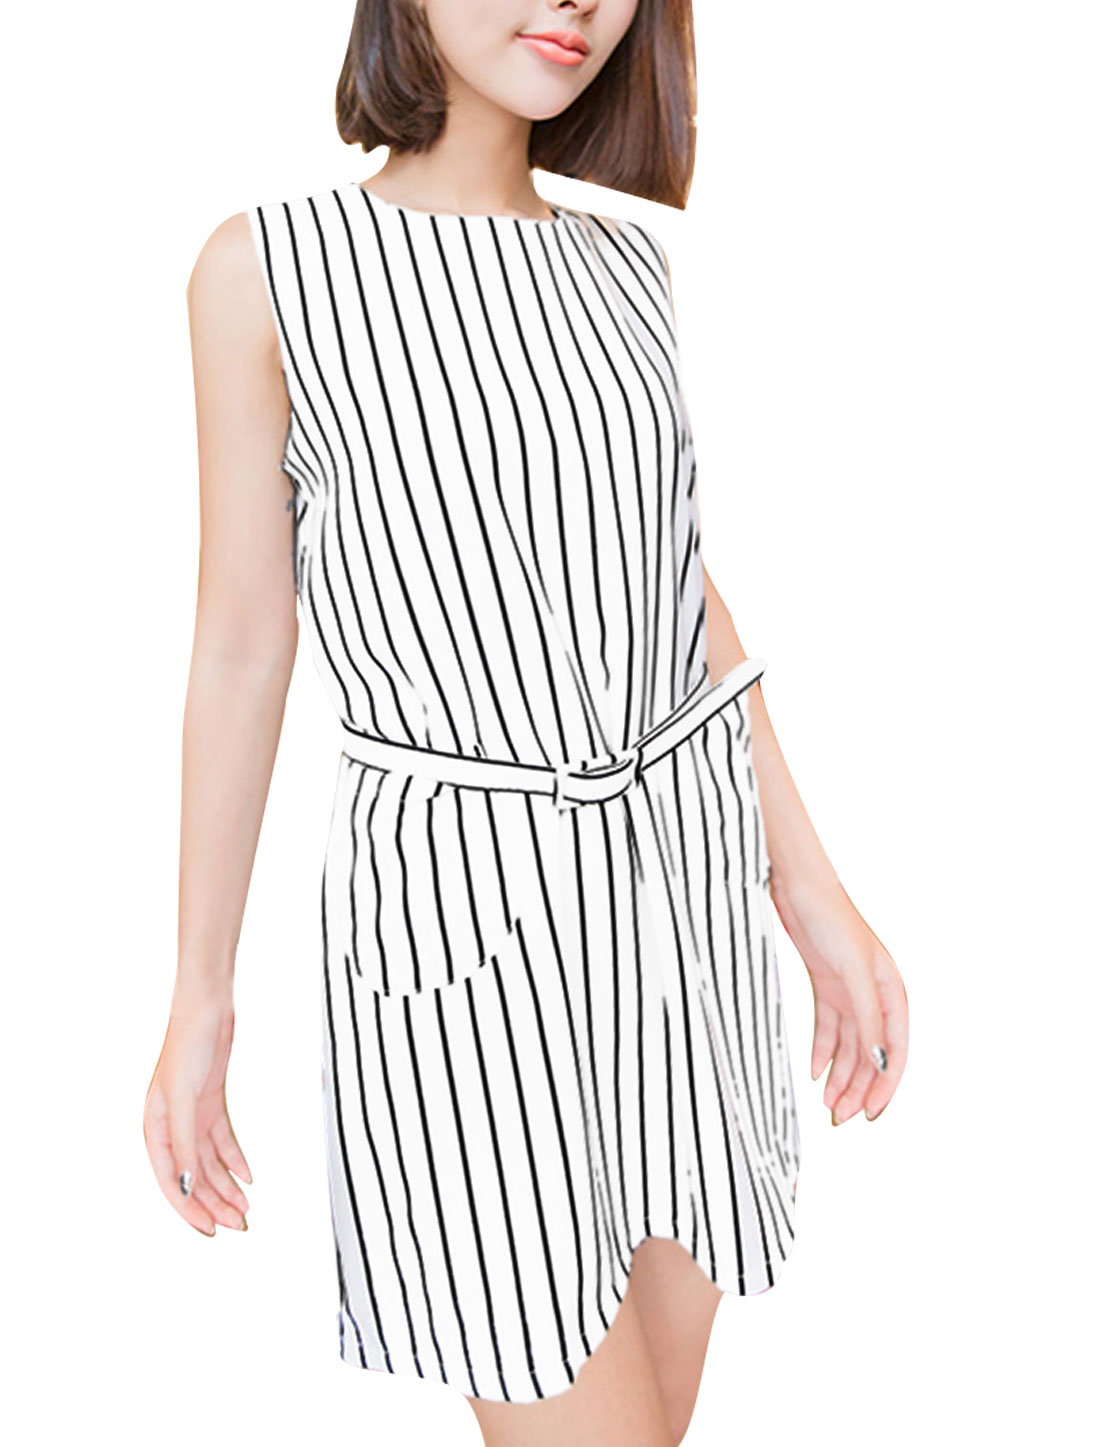 White S Two Tone Zipper Fly Color Block Stylish Women Dress